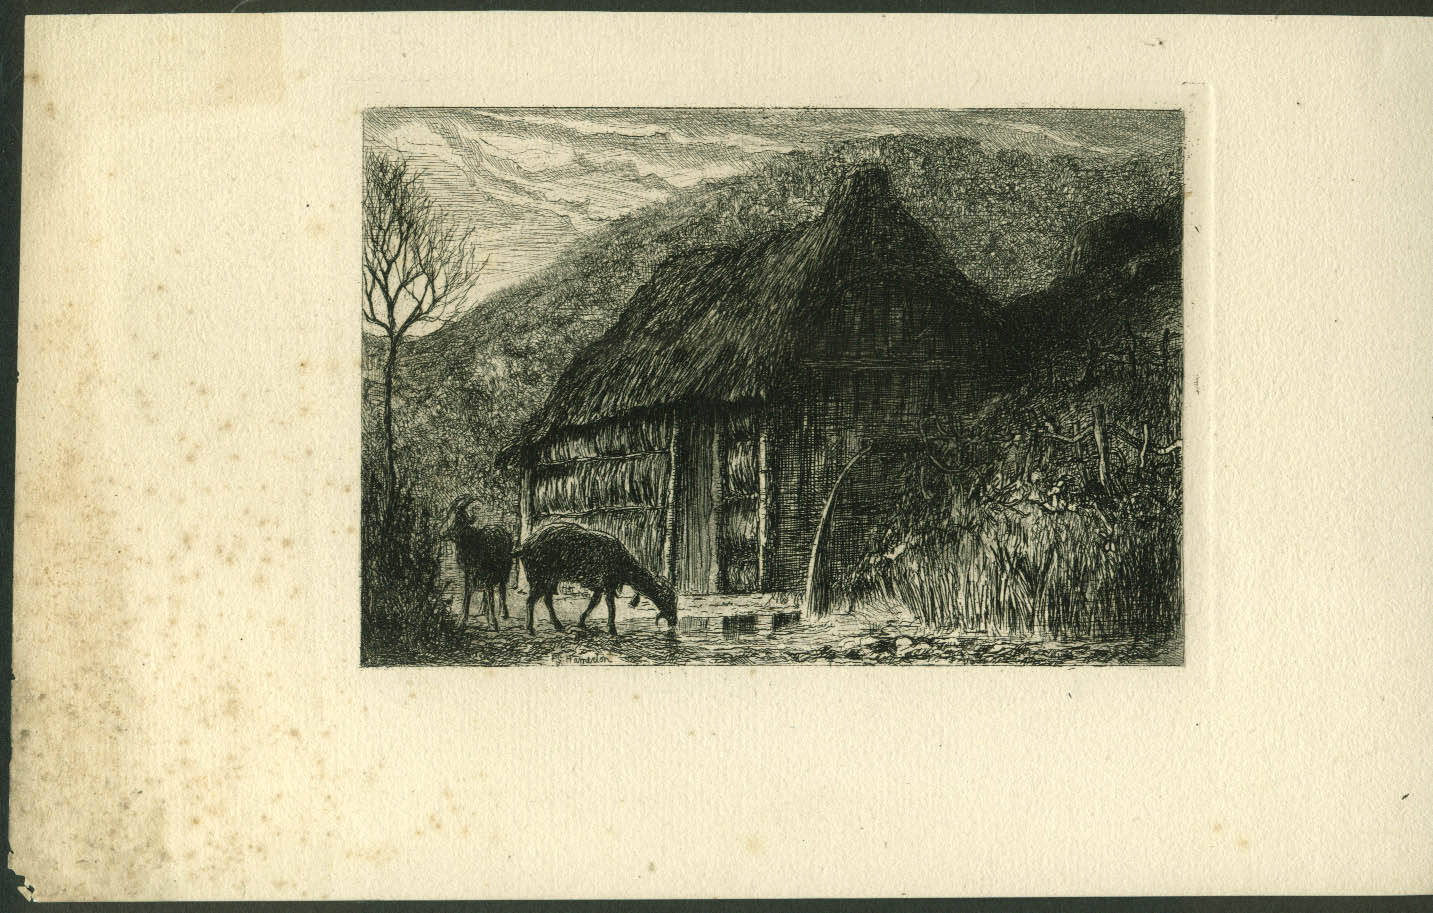 Image for Thatched roof building & goats etching by Philip Gilbert Hamerton ca 1860s